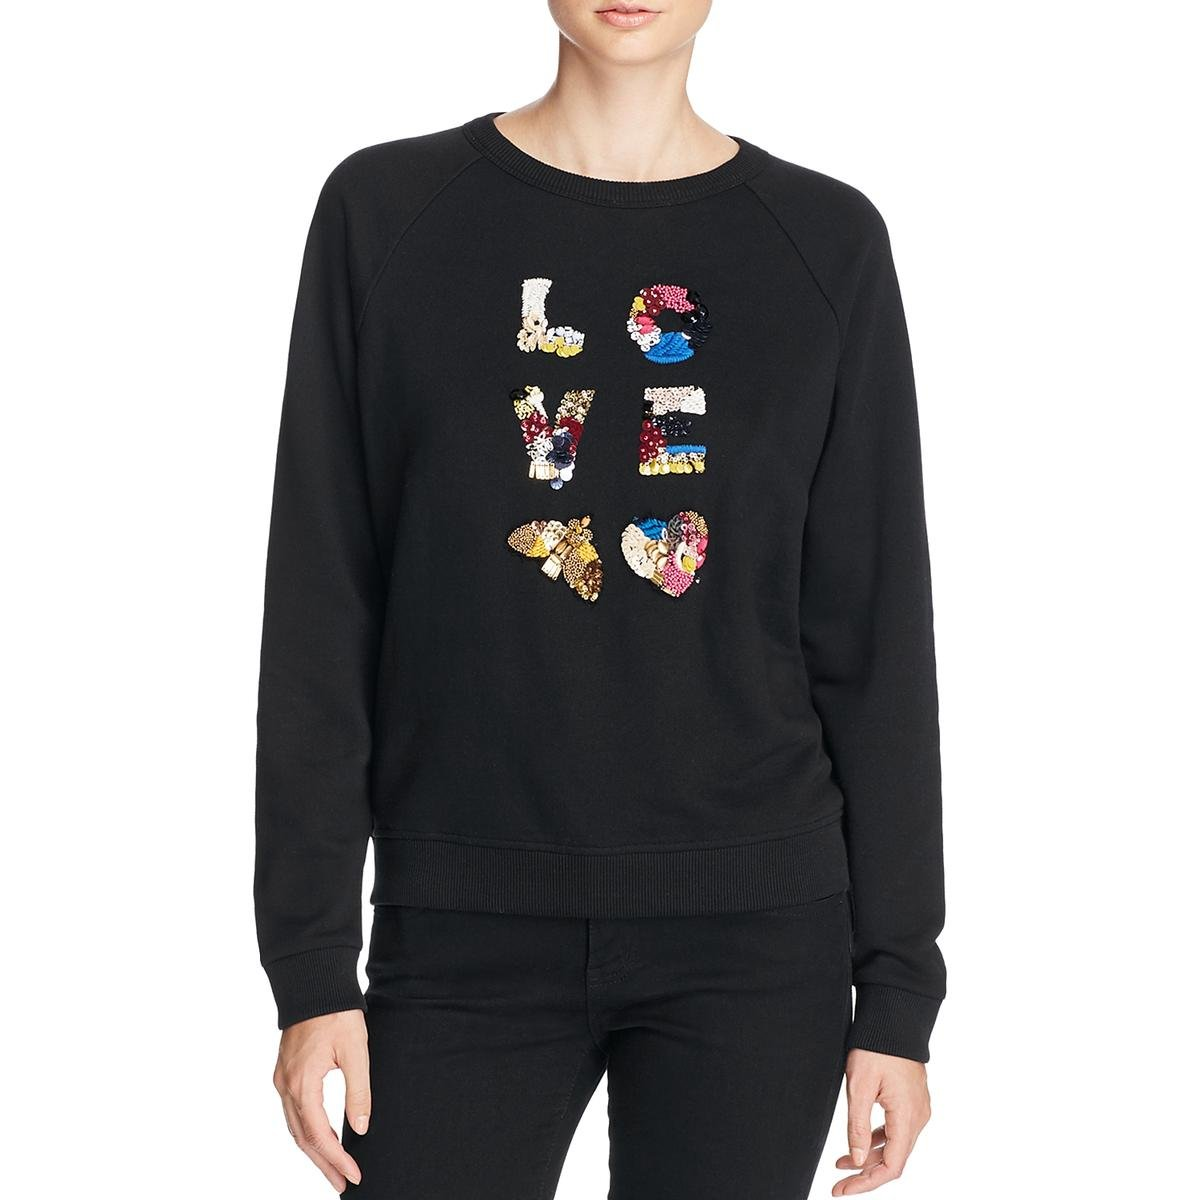 Tory Burch Womens Pullover Embellished Sweatshirt Black S by Tory Burch